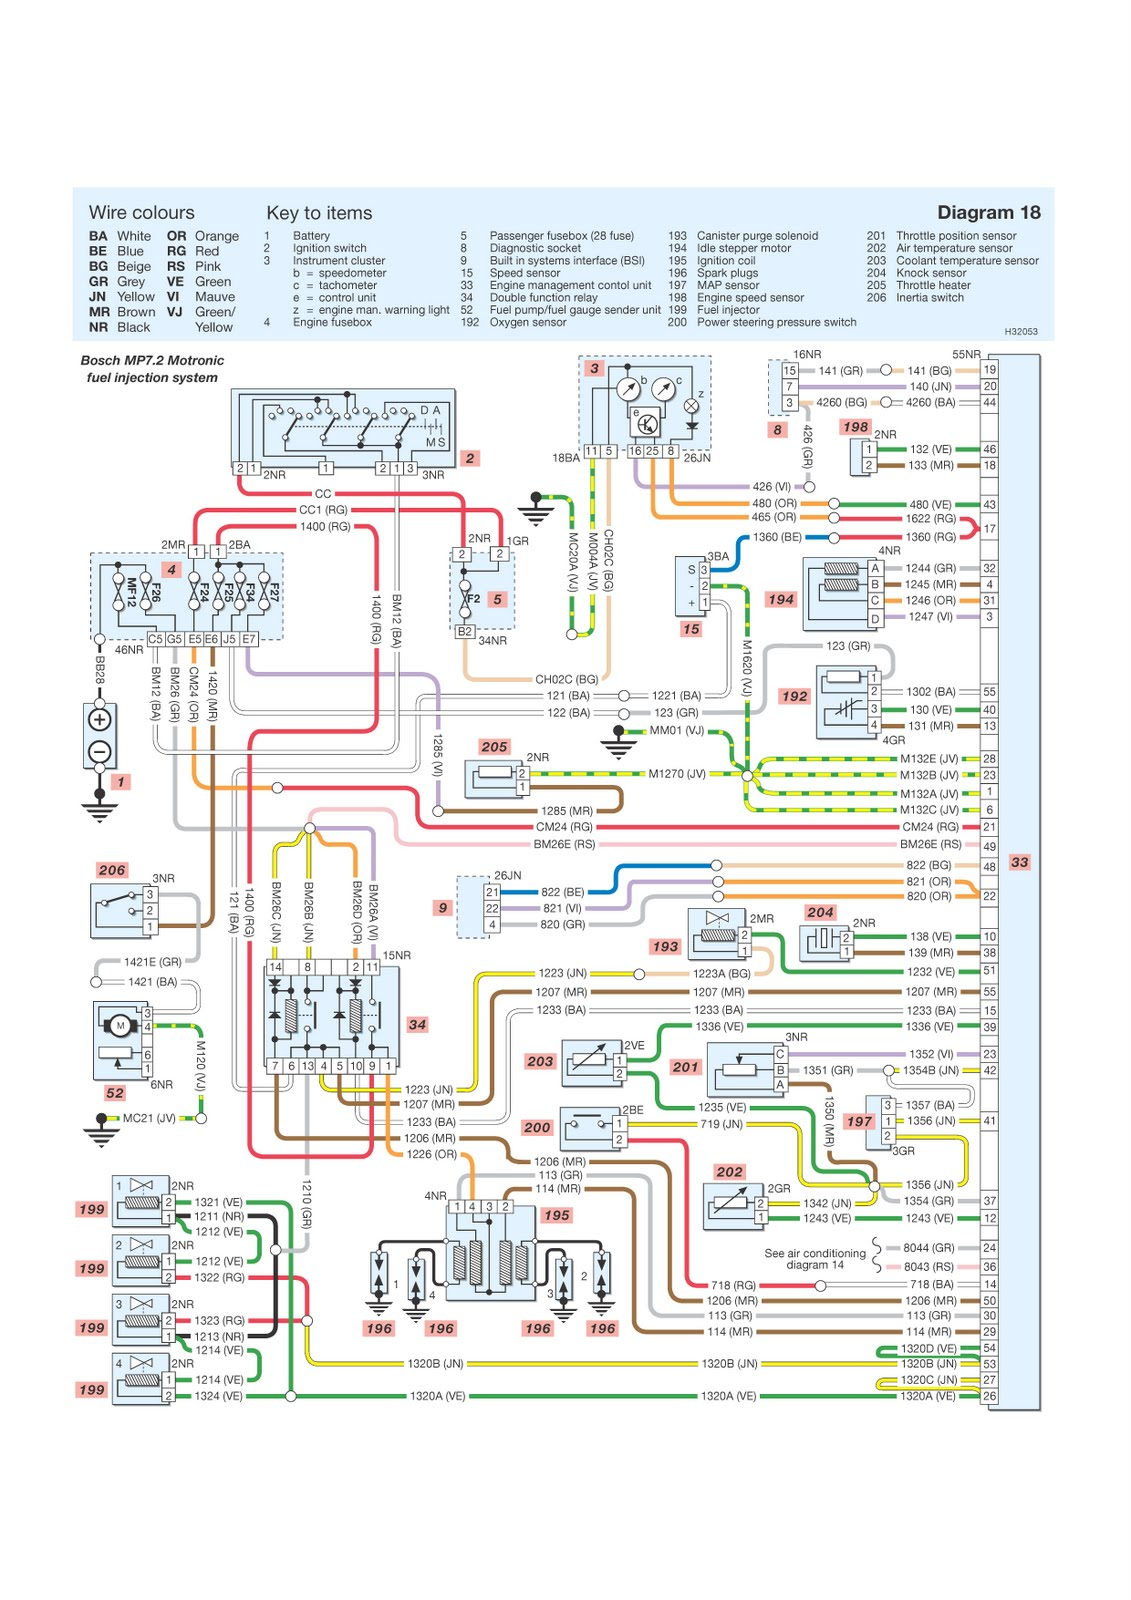 Peugeot 206 Wiring Diagrams Washwipe system, ABS